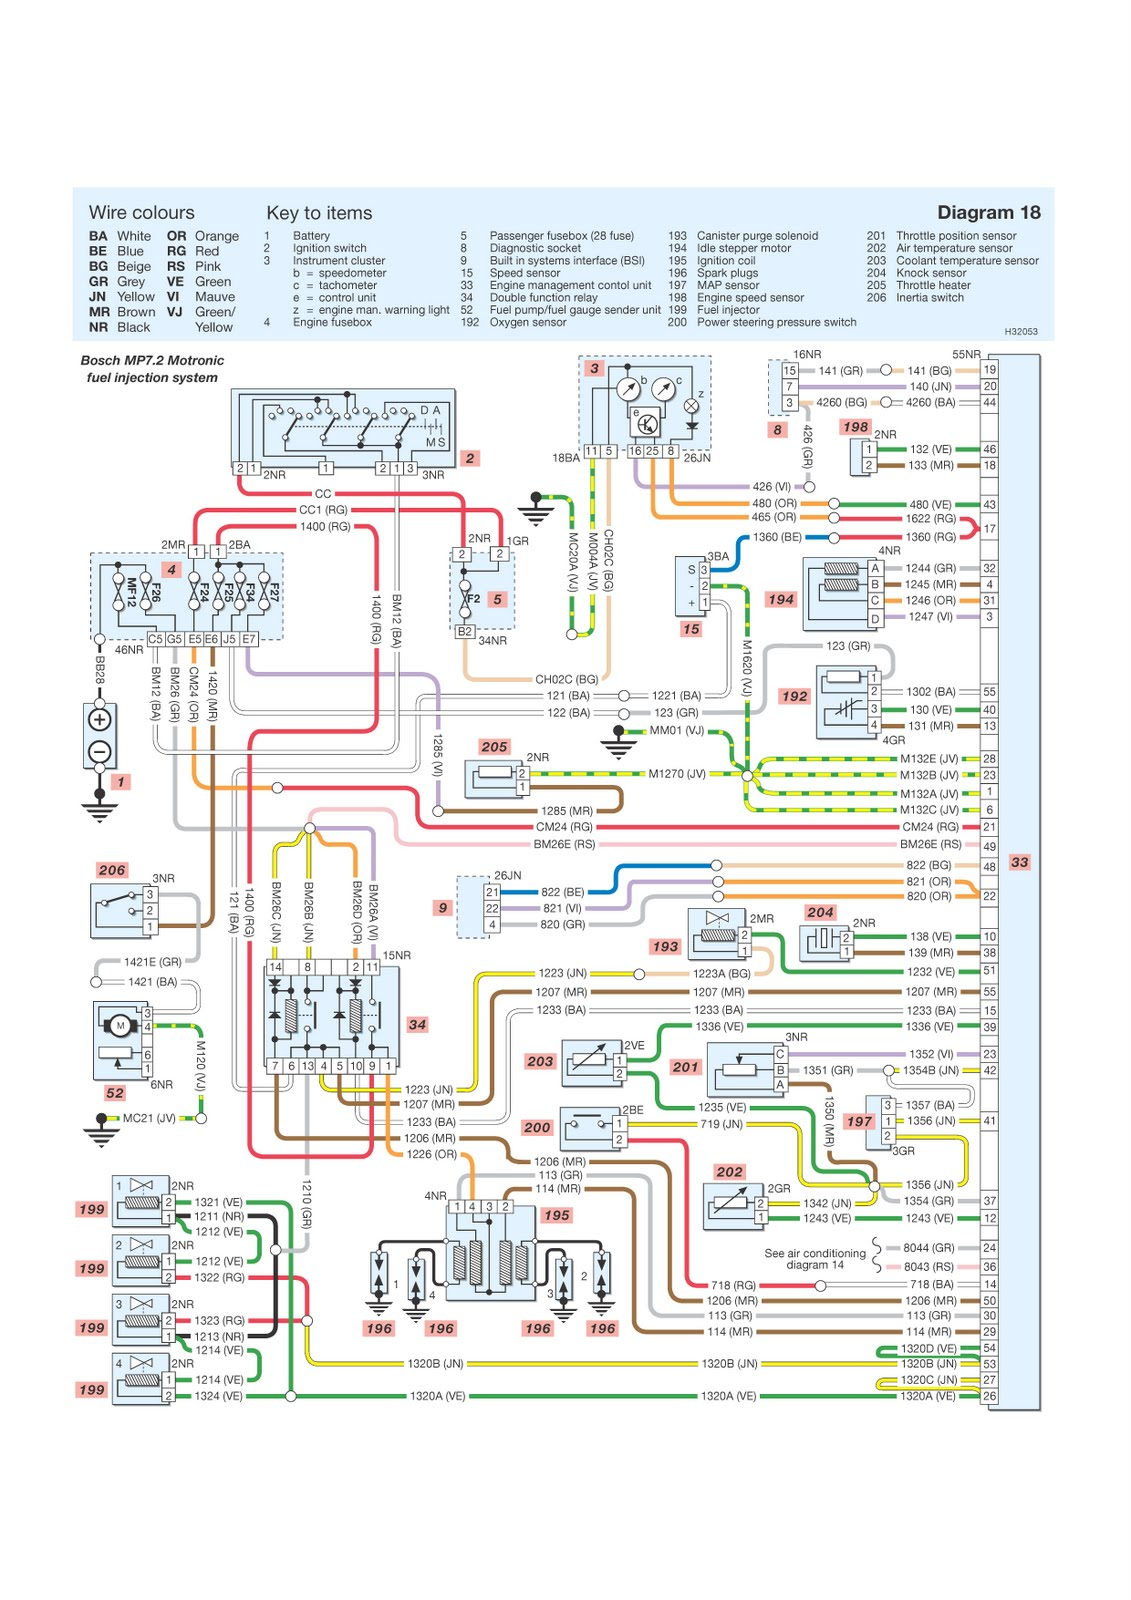 Peugeot 206 Wiring Diagrams Washwipe system, ABS